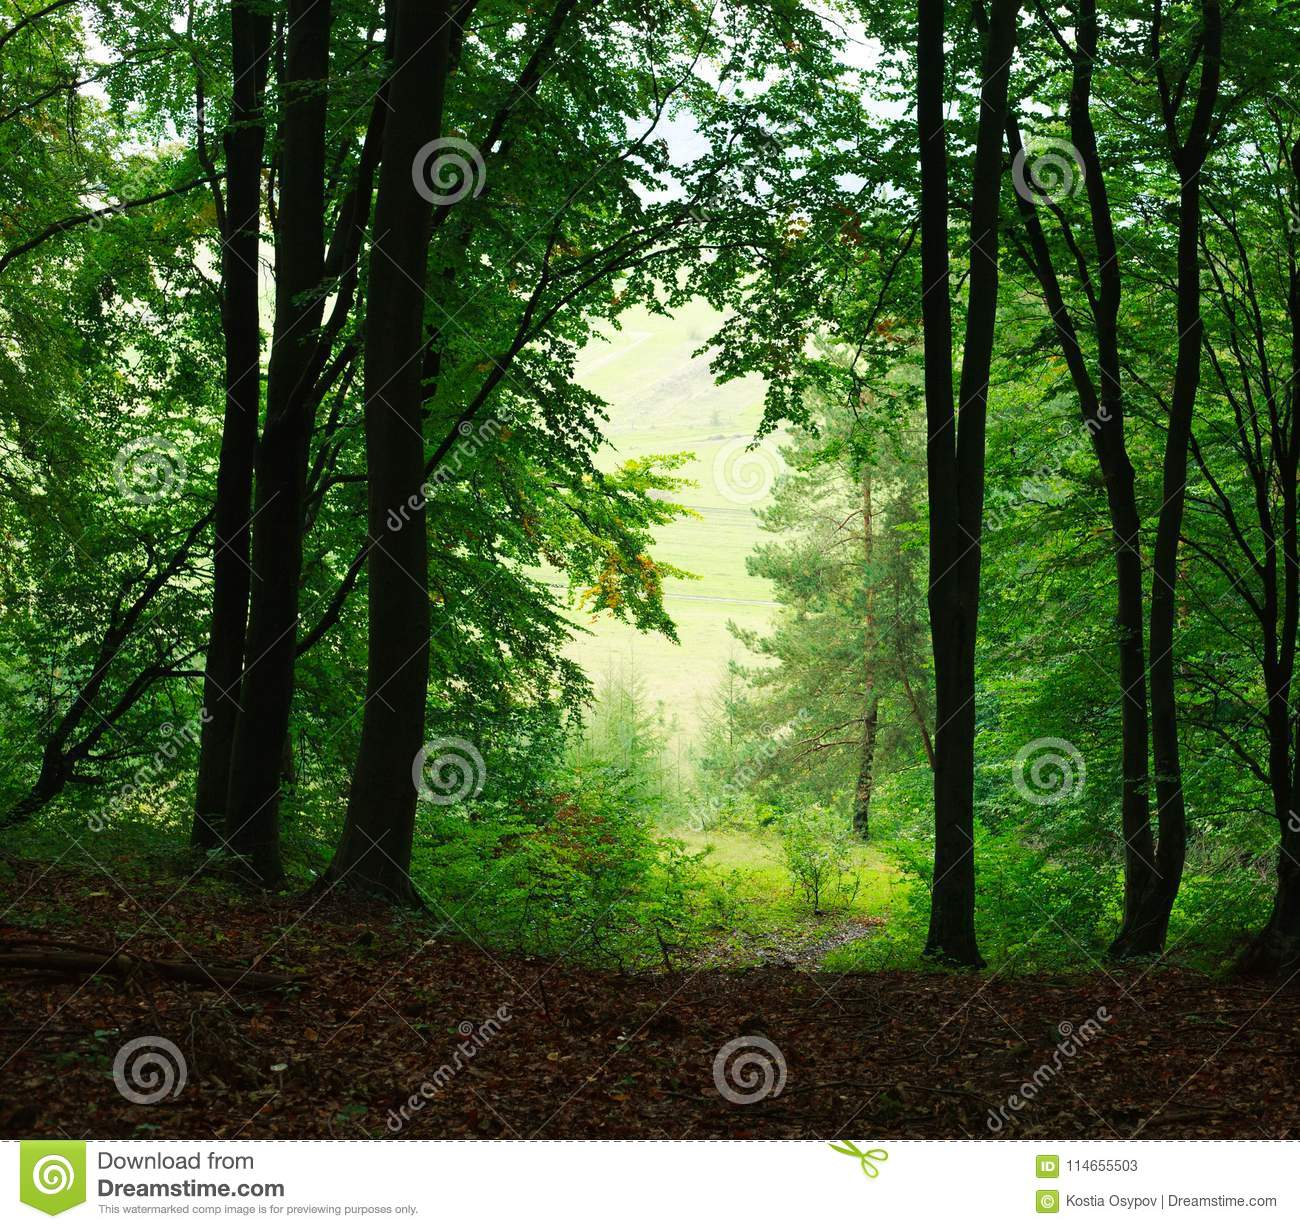 Nature Background Summer Misty Green Forest Stock Image - Image of